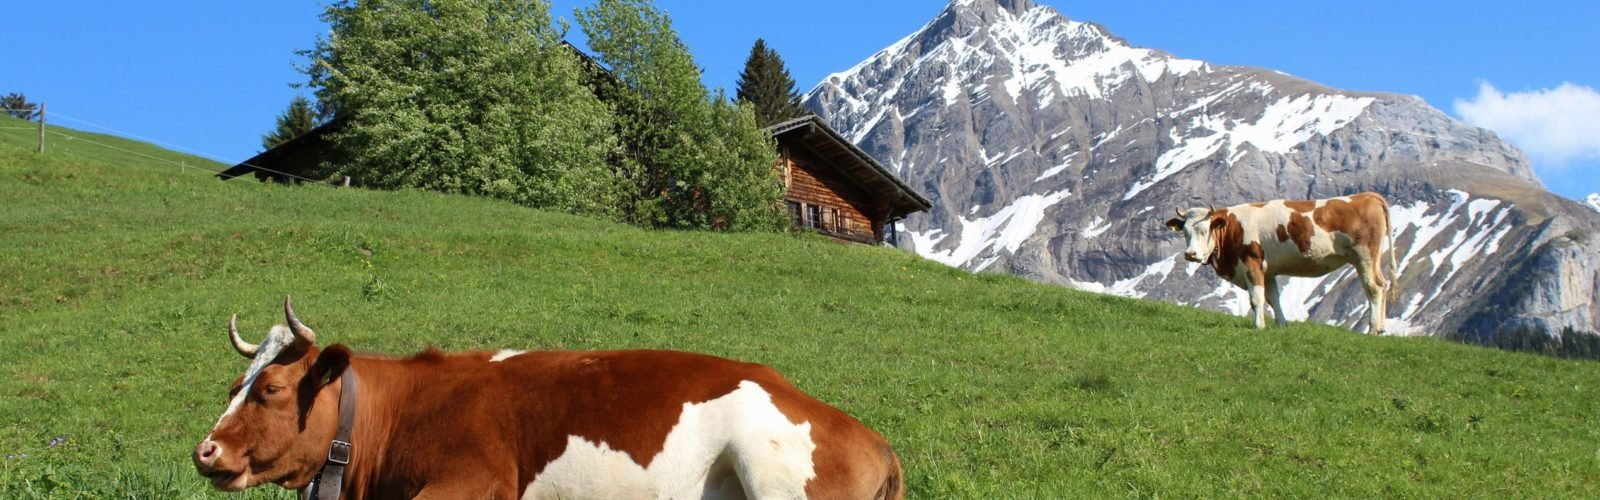 gstaad-cows